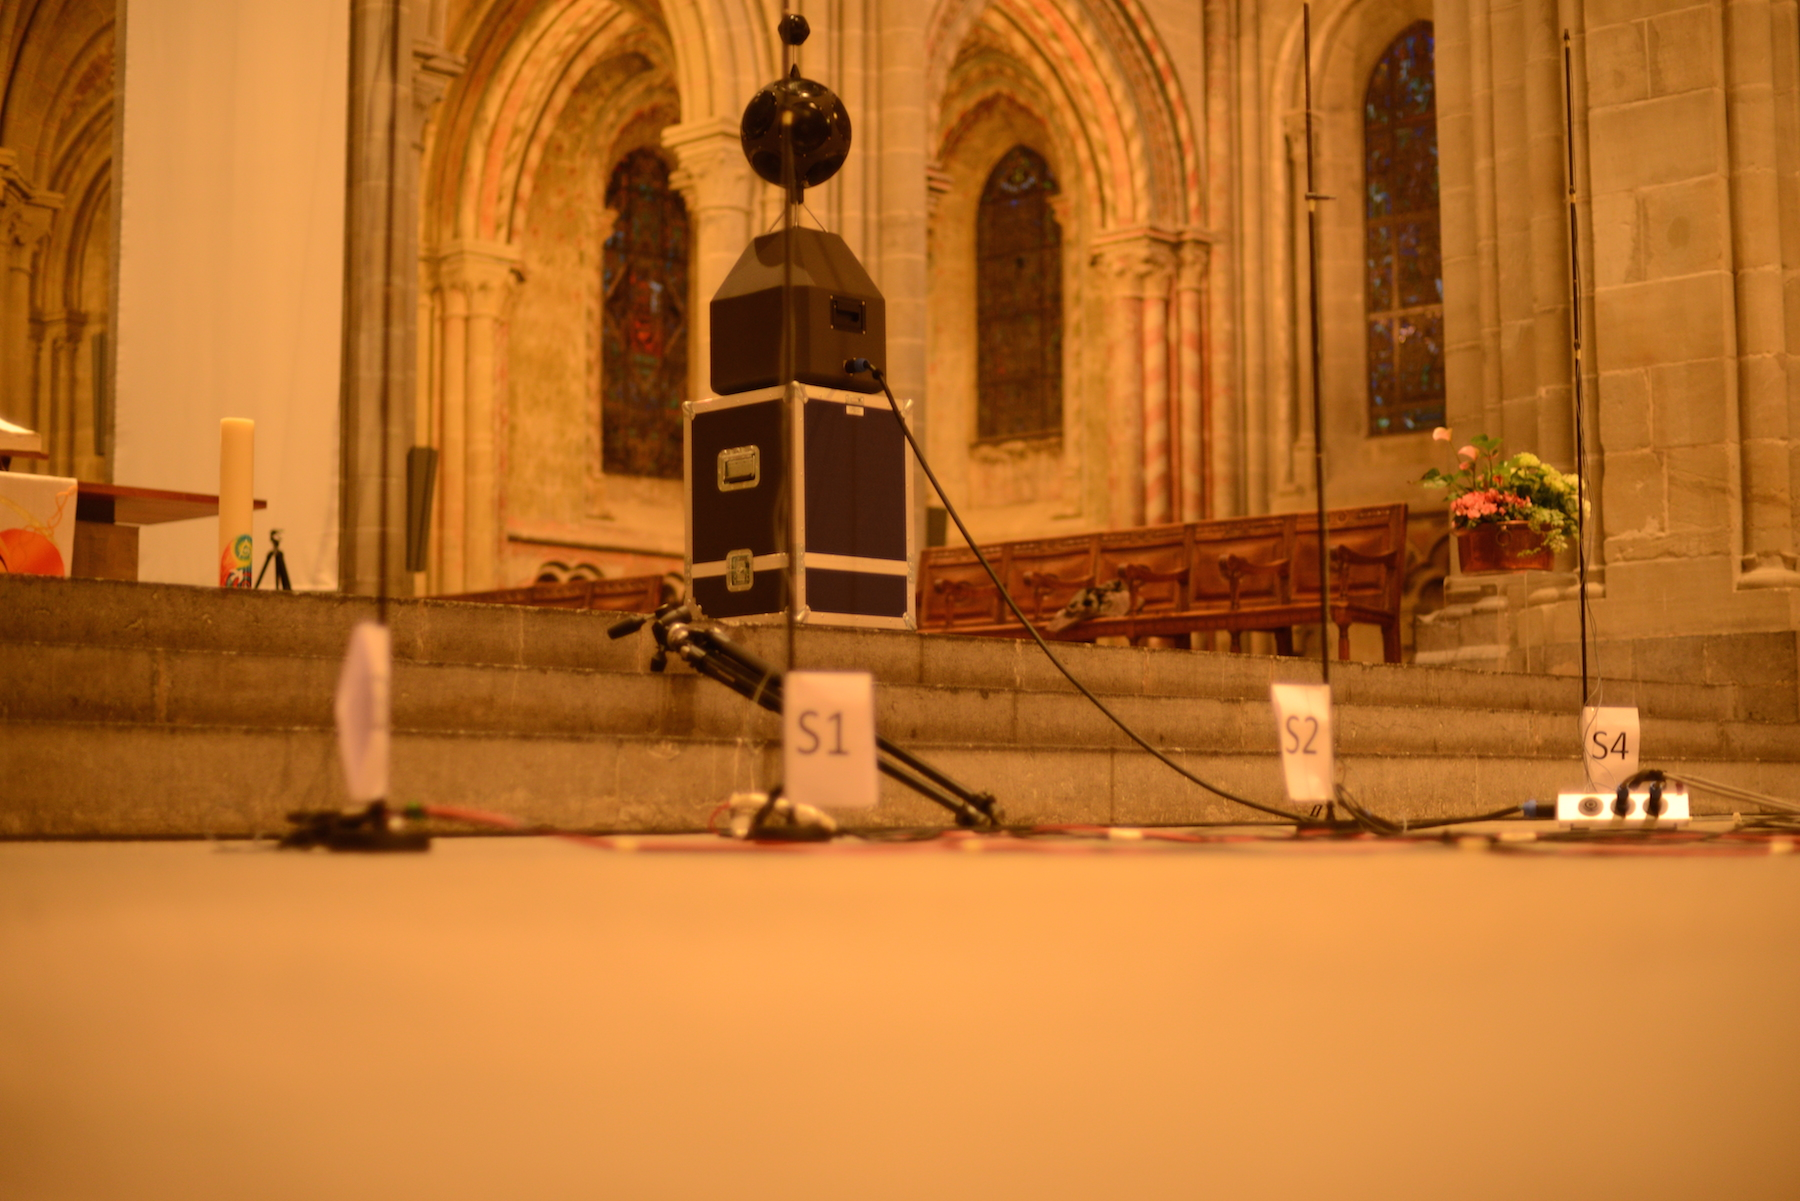 Dodecahedron loudspeaker designed by ITA at the altar